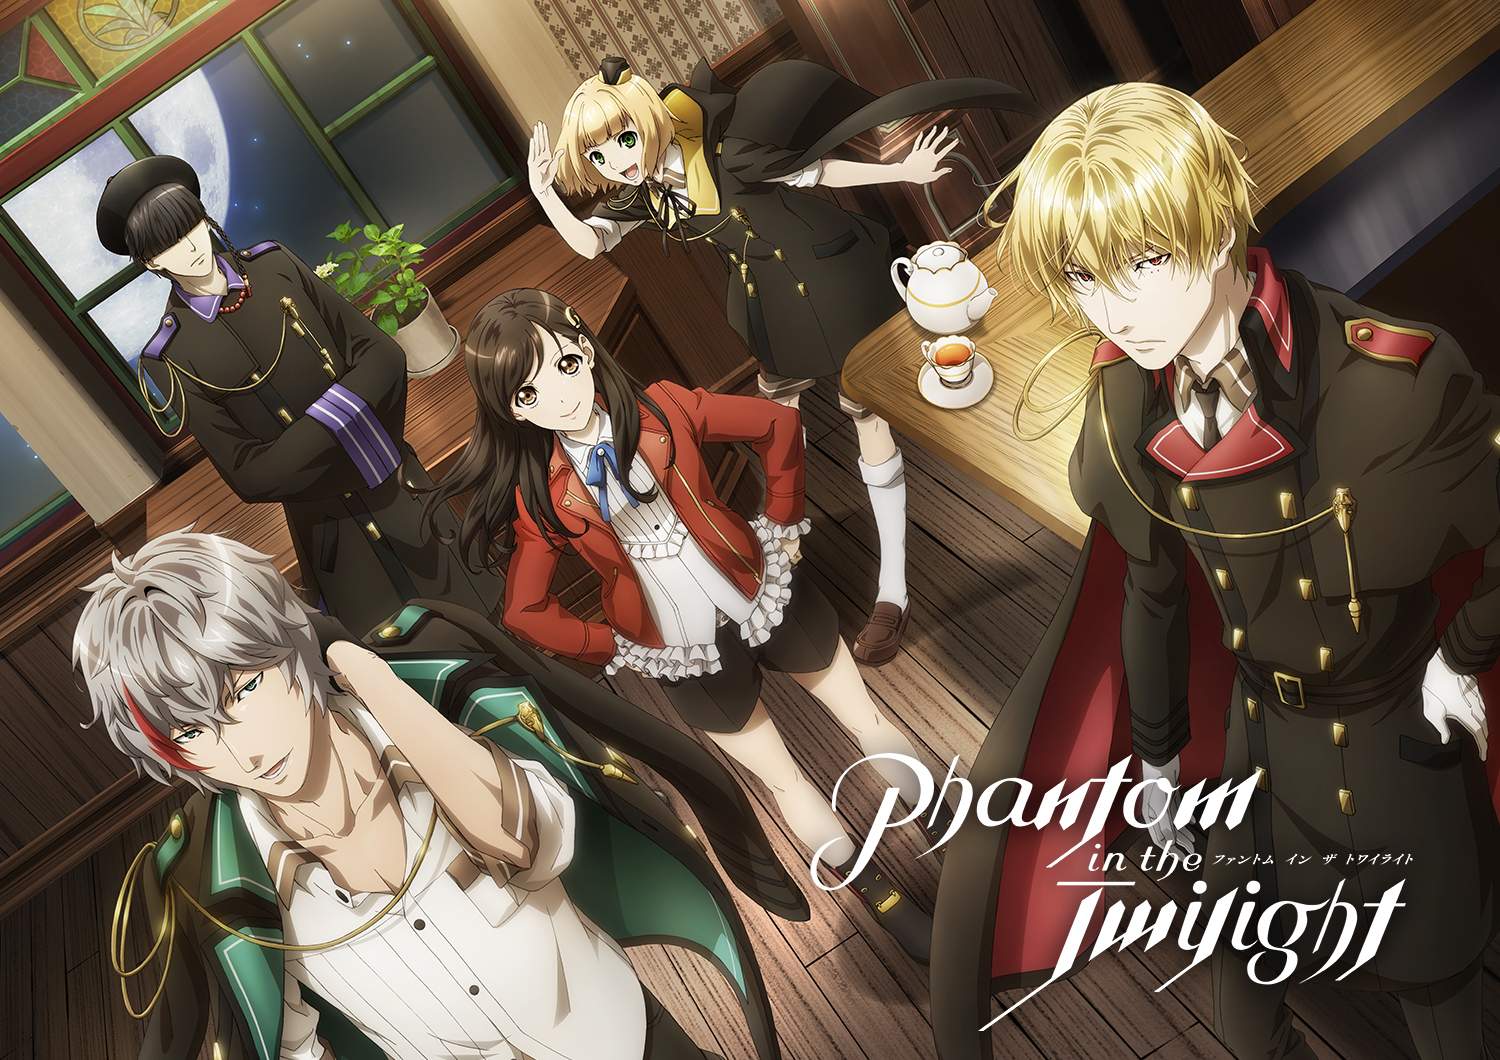 TVアニメ『Phantom in the Twilight』  (C)2018 Happy Elements AP